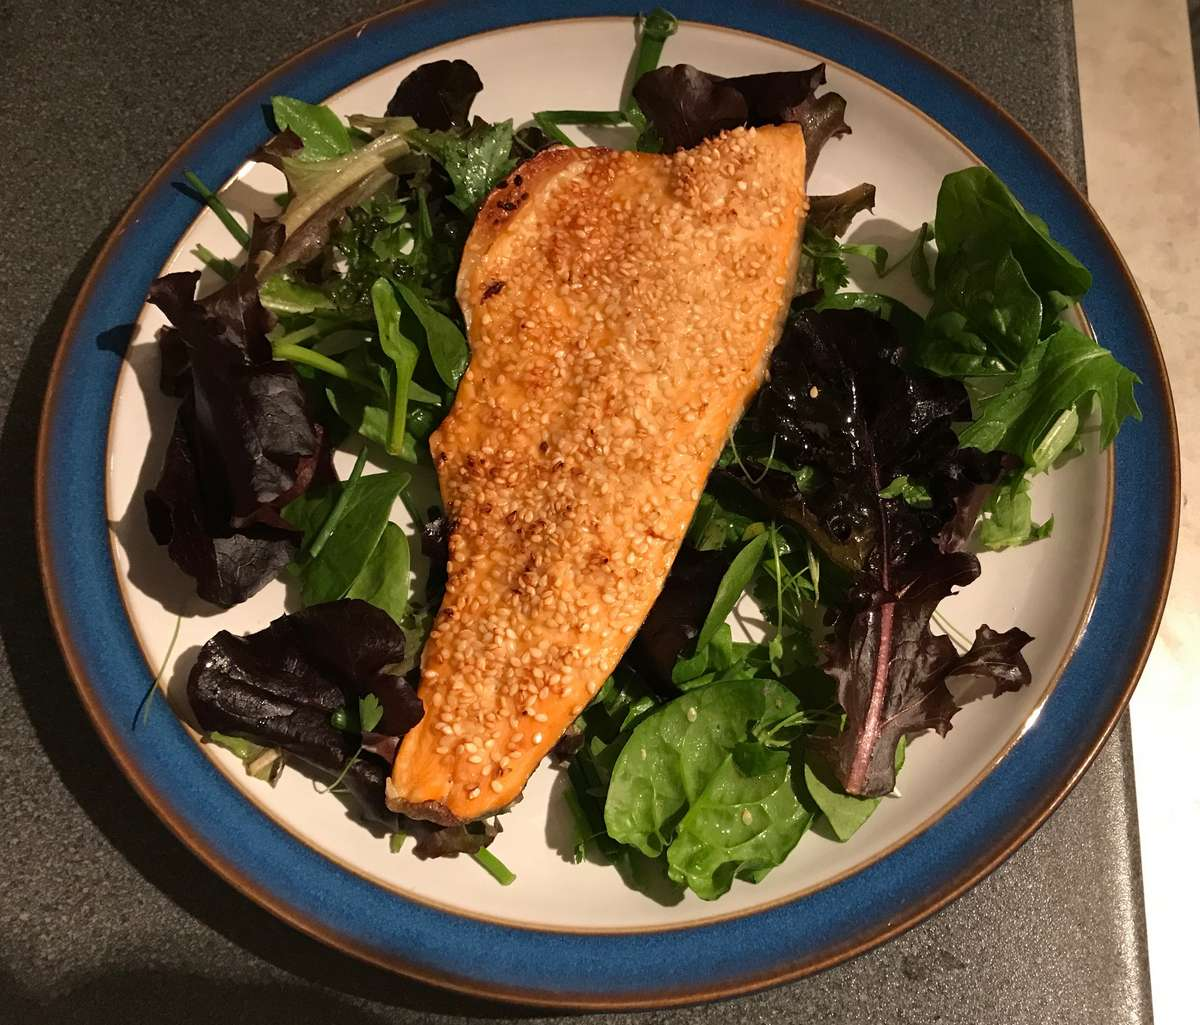 Should you become a pescatarian? Sesame Trout served on a bed of herb salad leaves